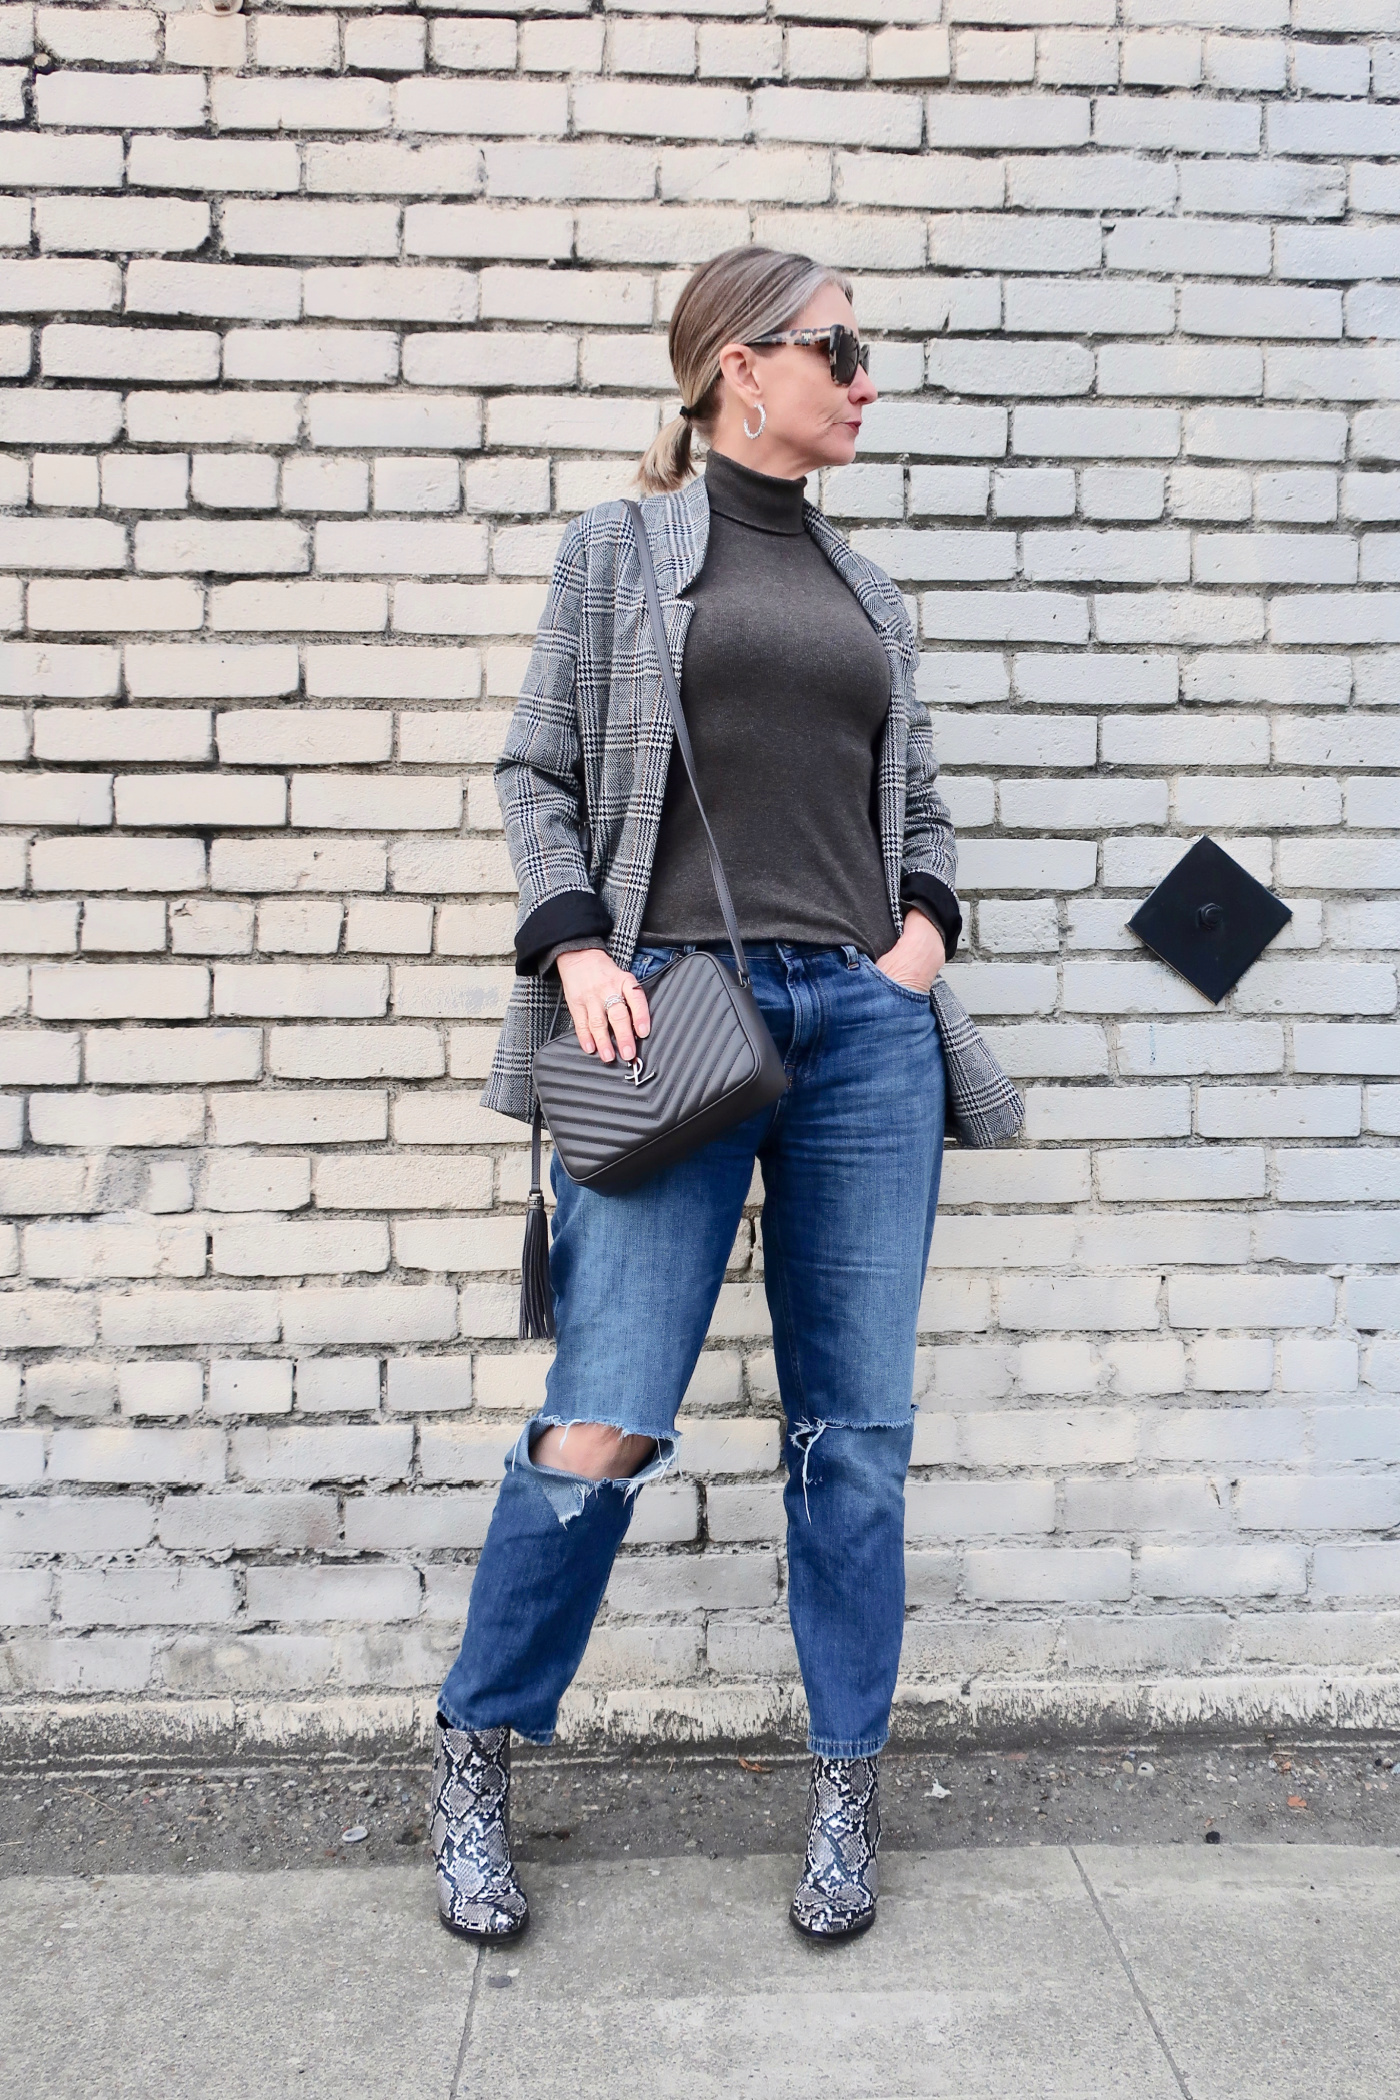 Everlane's Super Soft Relaxed Jeans